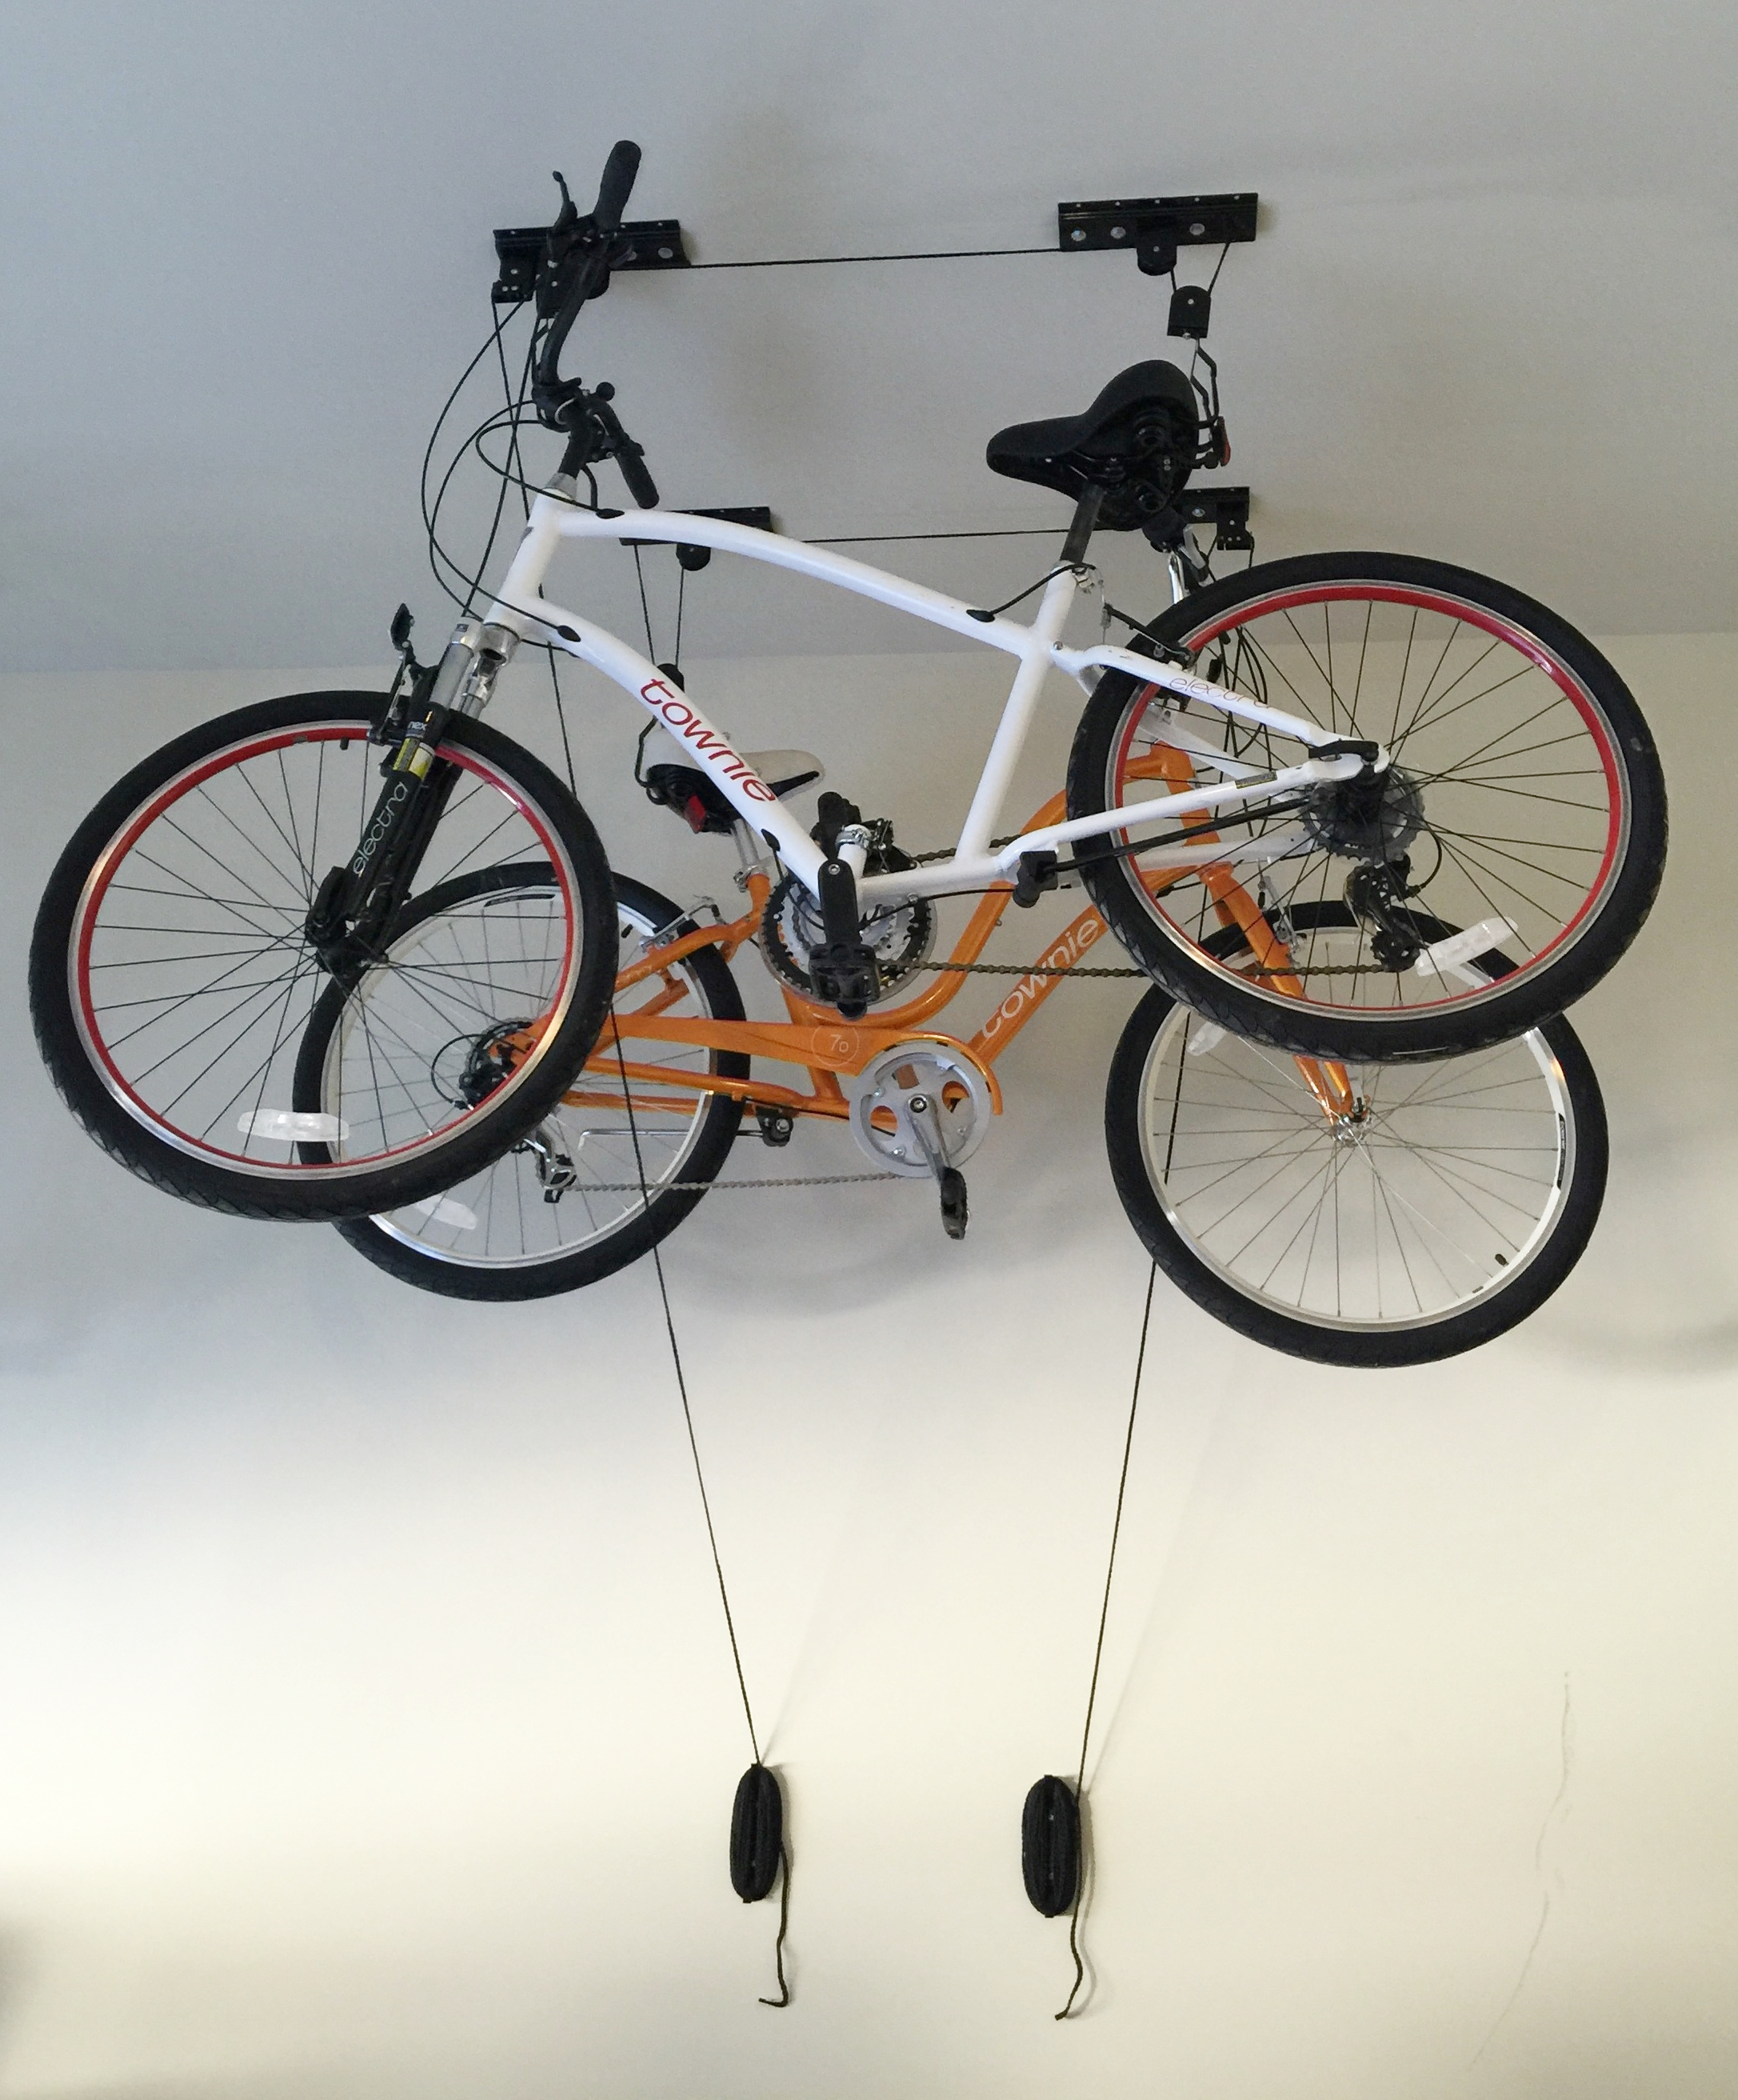 Manual Bike Hoist